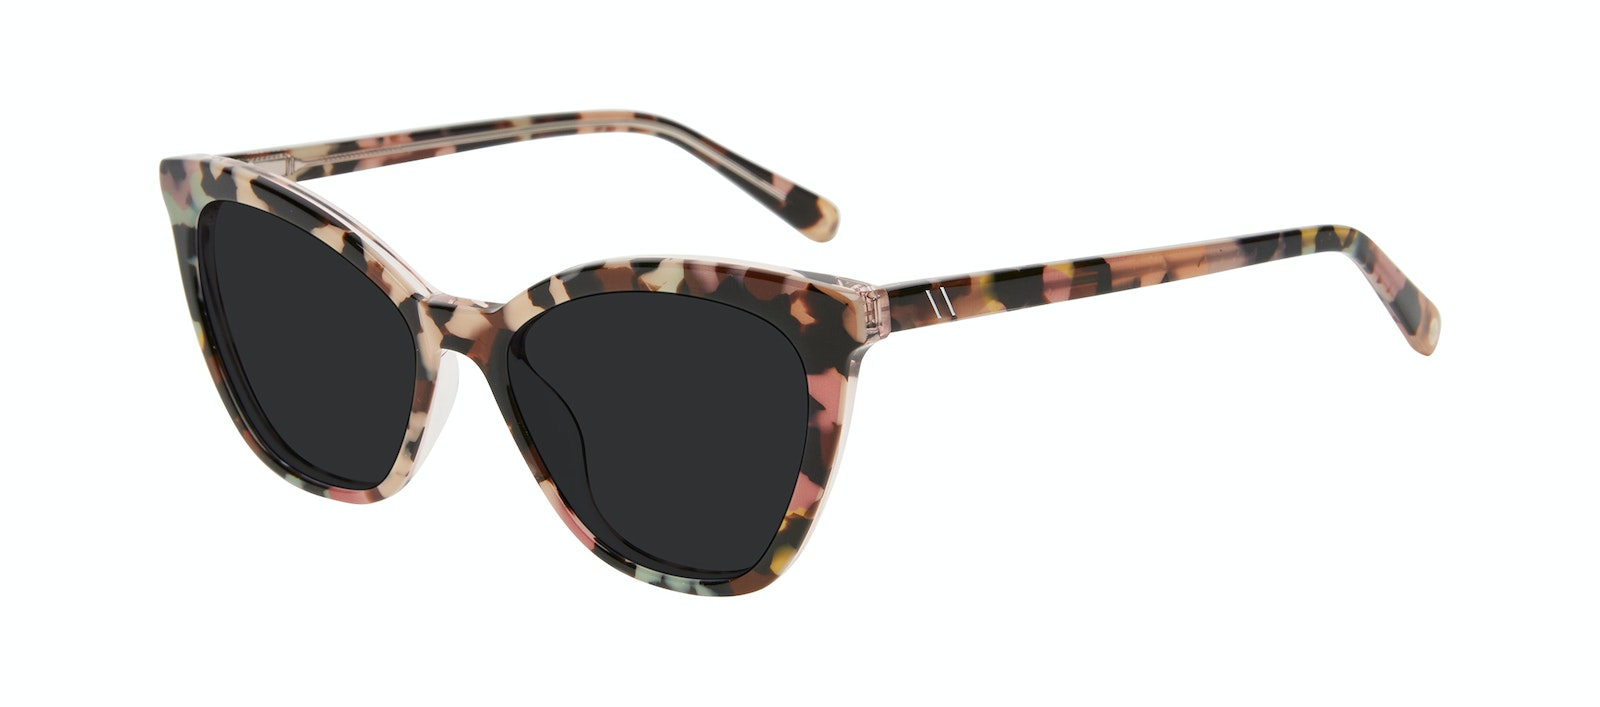 Affordable Fashion Glasses Cat Eye Sunglasses Women Elan Pastel Tort Tilt